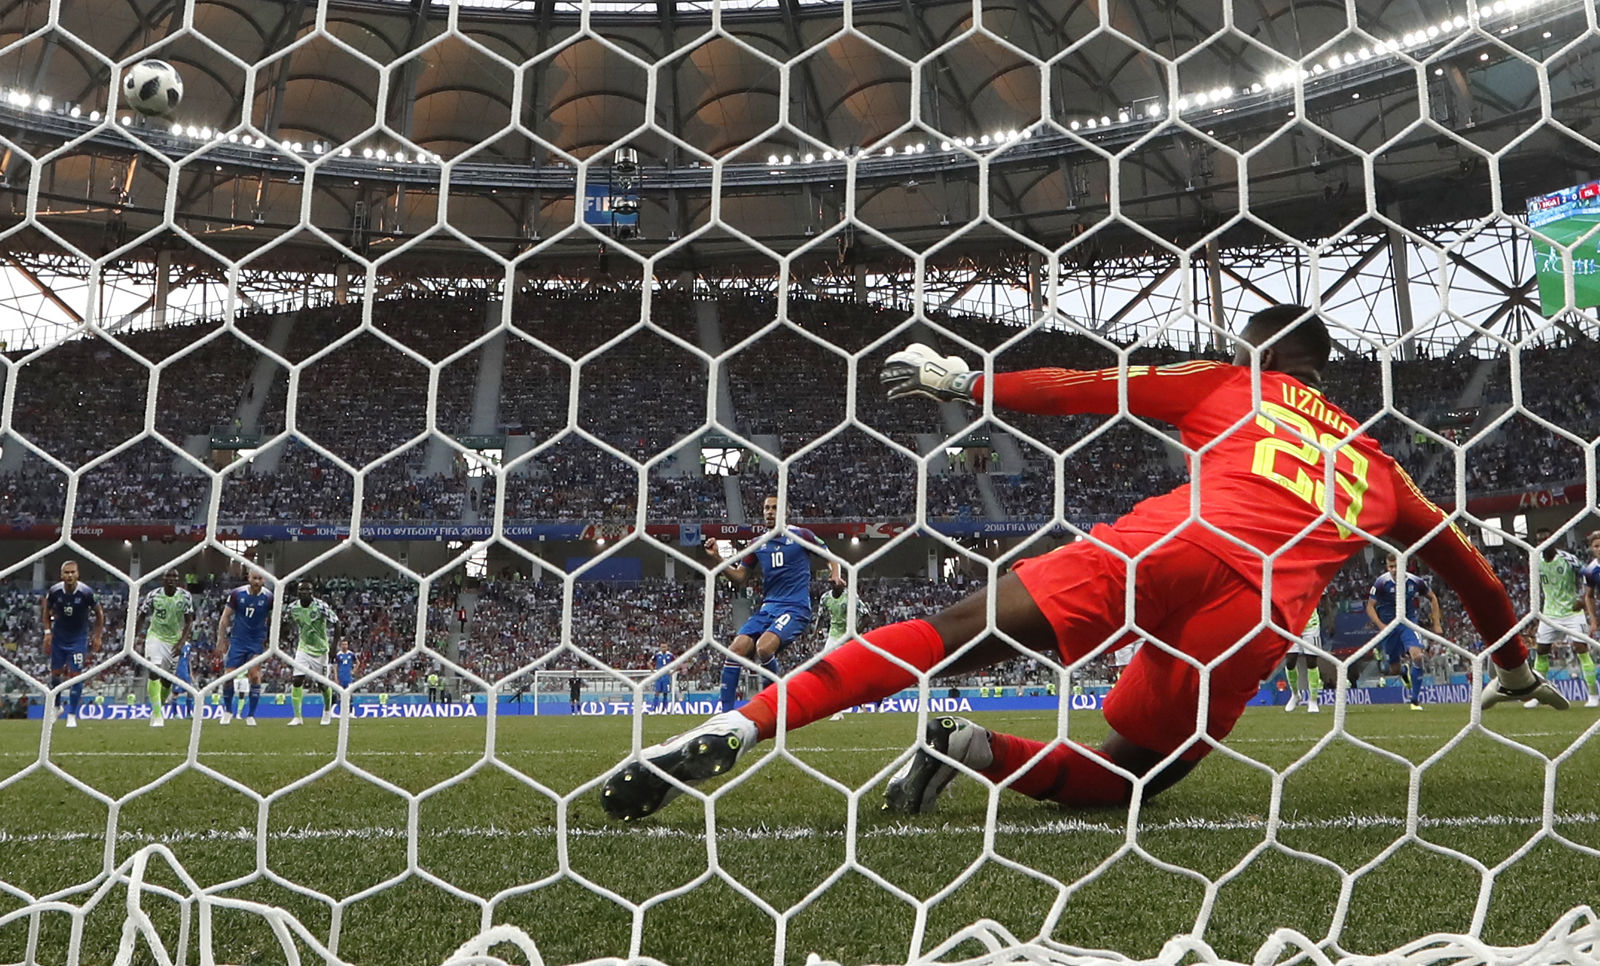 Iceland's Gylfi Sigurdsson kicks the ball over the bar on a penalty during the group D match between Nigeria and Iceland at the 2018 soccer World Cup in the Volgograd Arena in Volgograd, Russia, Friday, June 22, 2018. (AP Photo/Andrew Medichini)